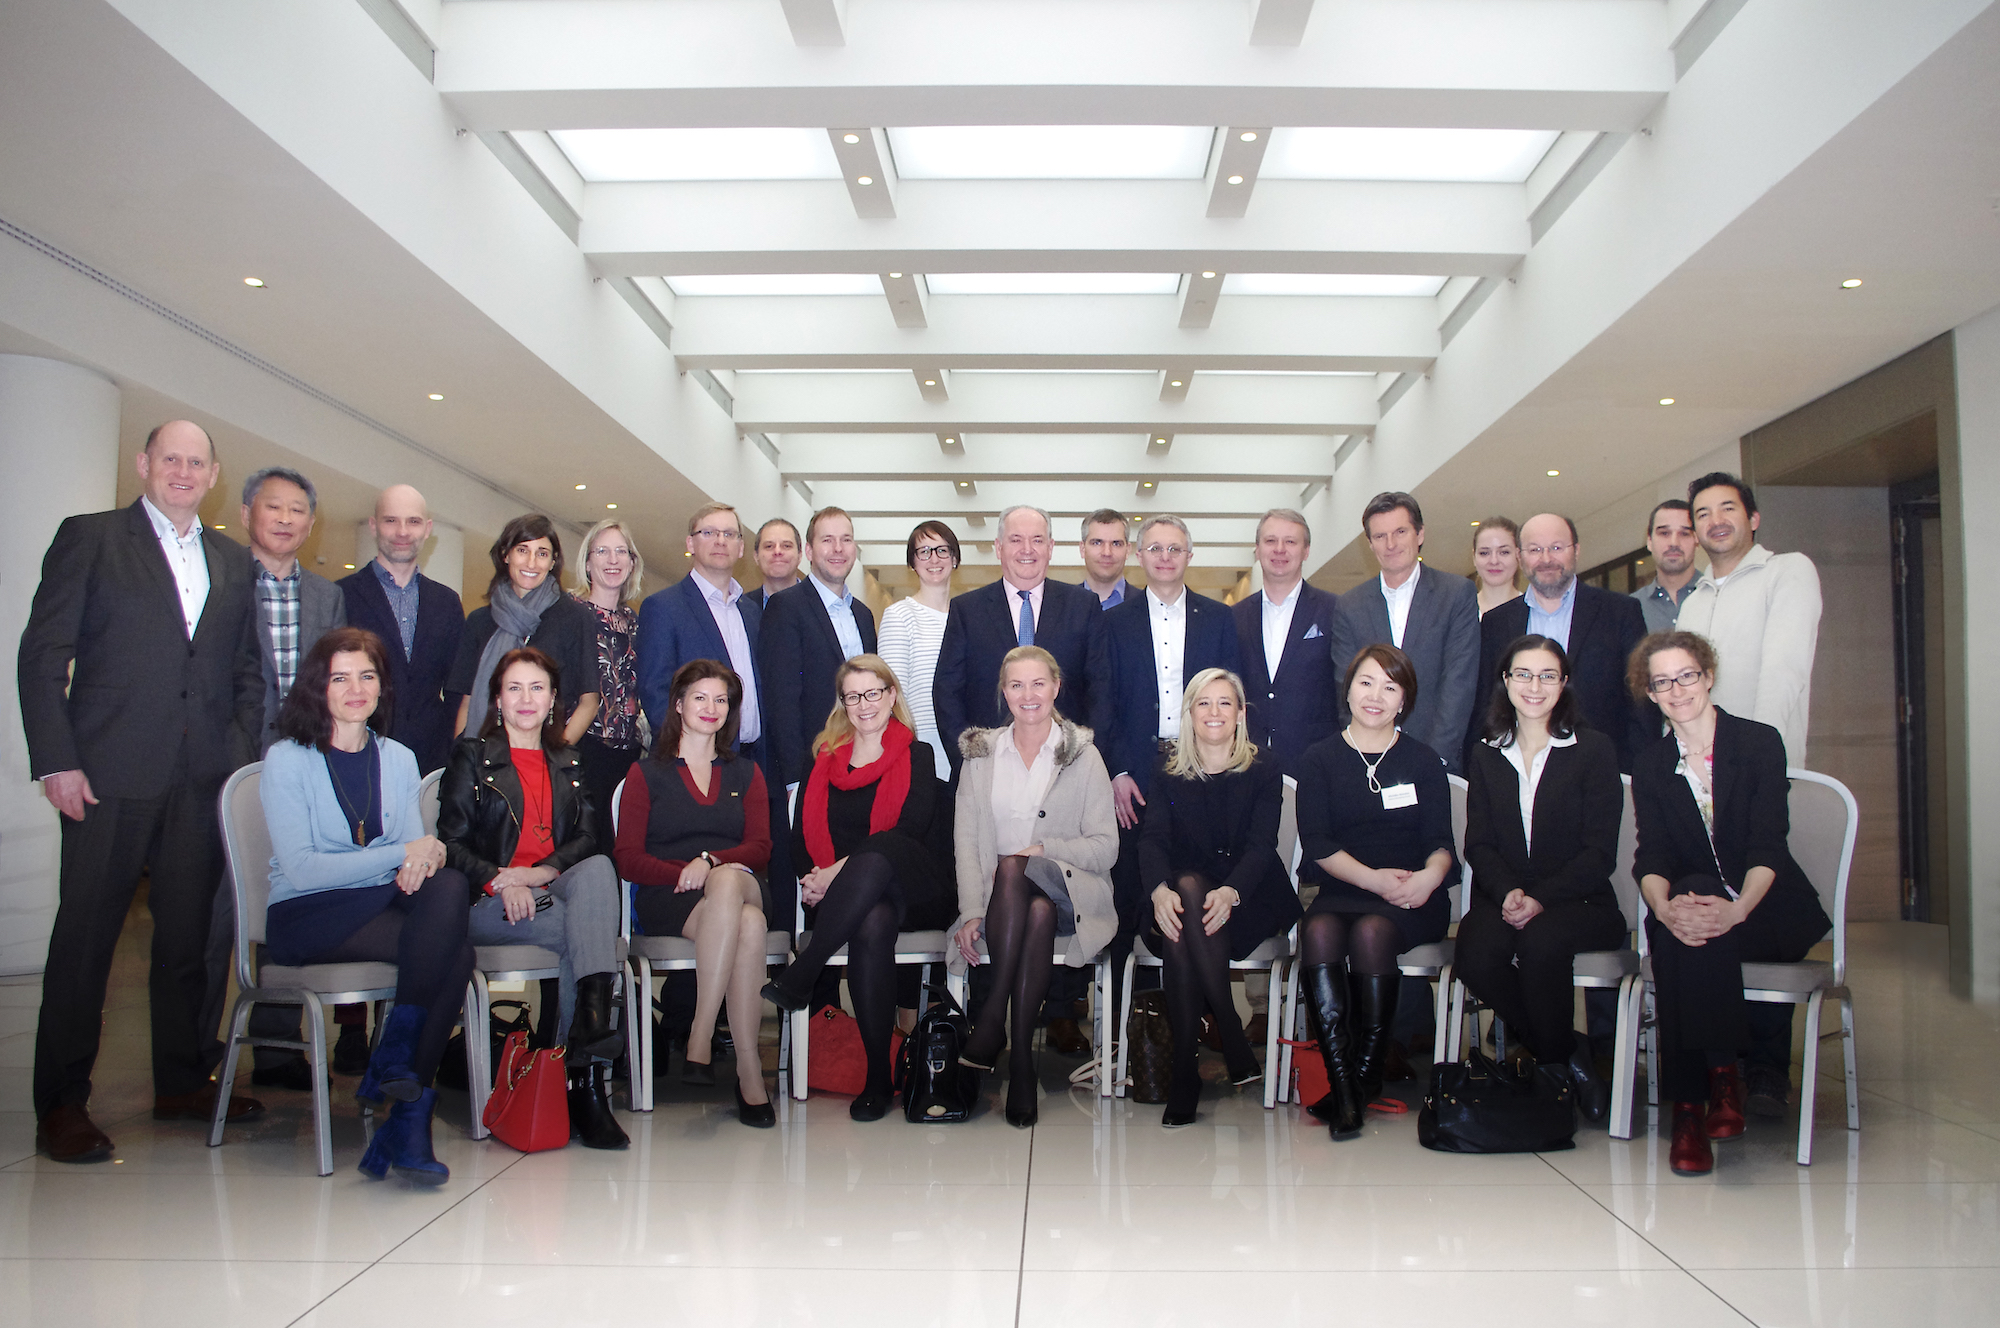 Group Photo of Eurocom Worldwide Delegates at the Annual Conference 2017 in Berlin